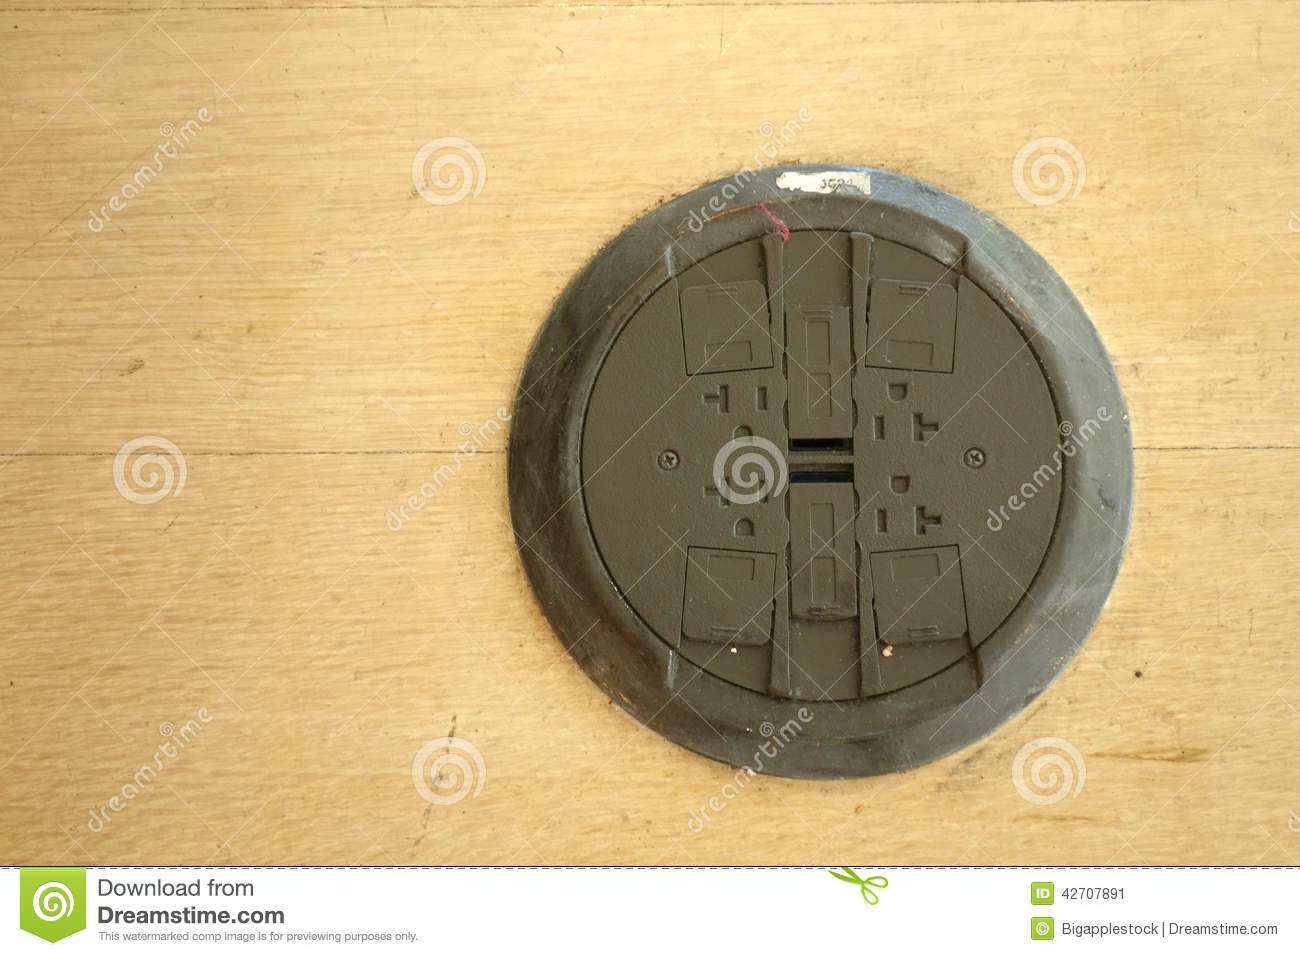 Floor Outlets Stock Photo - Image: 42707891